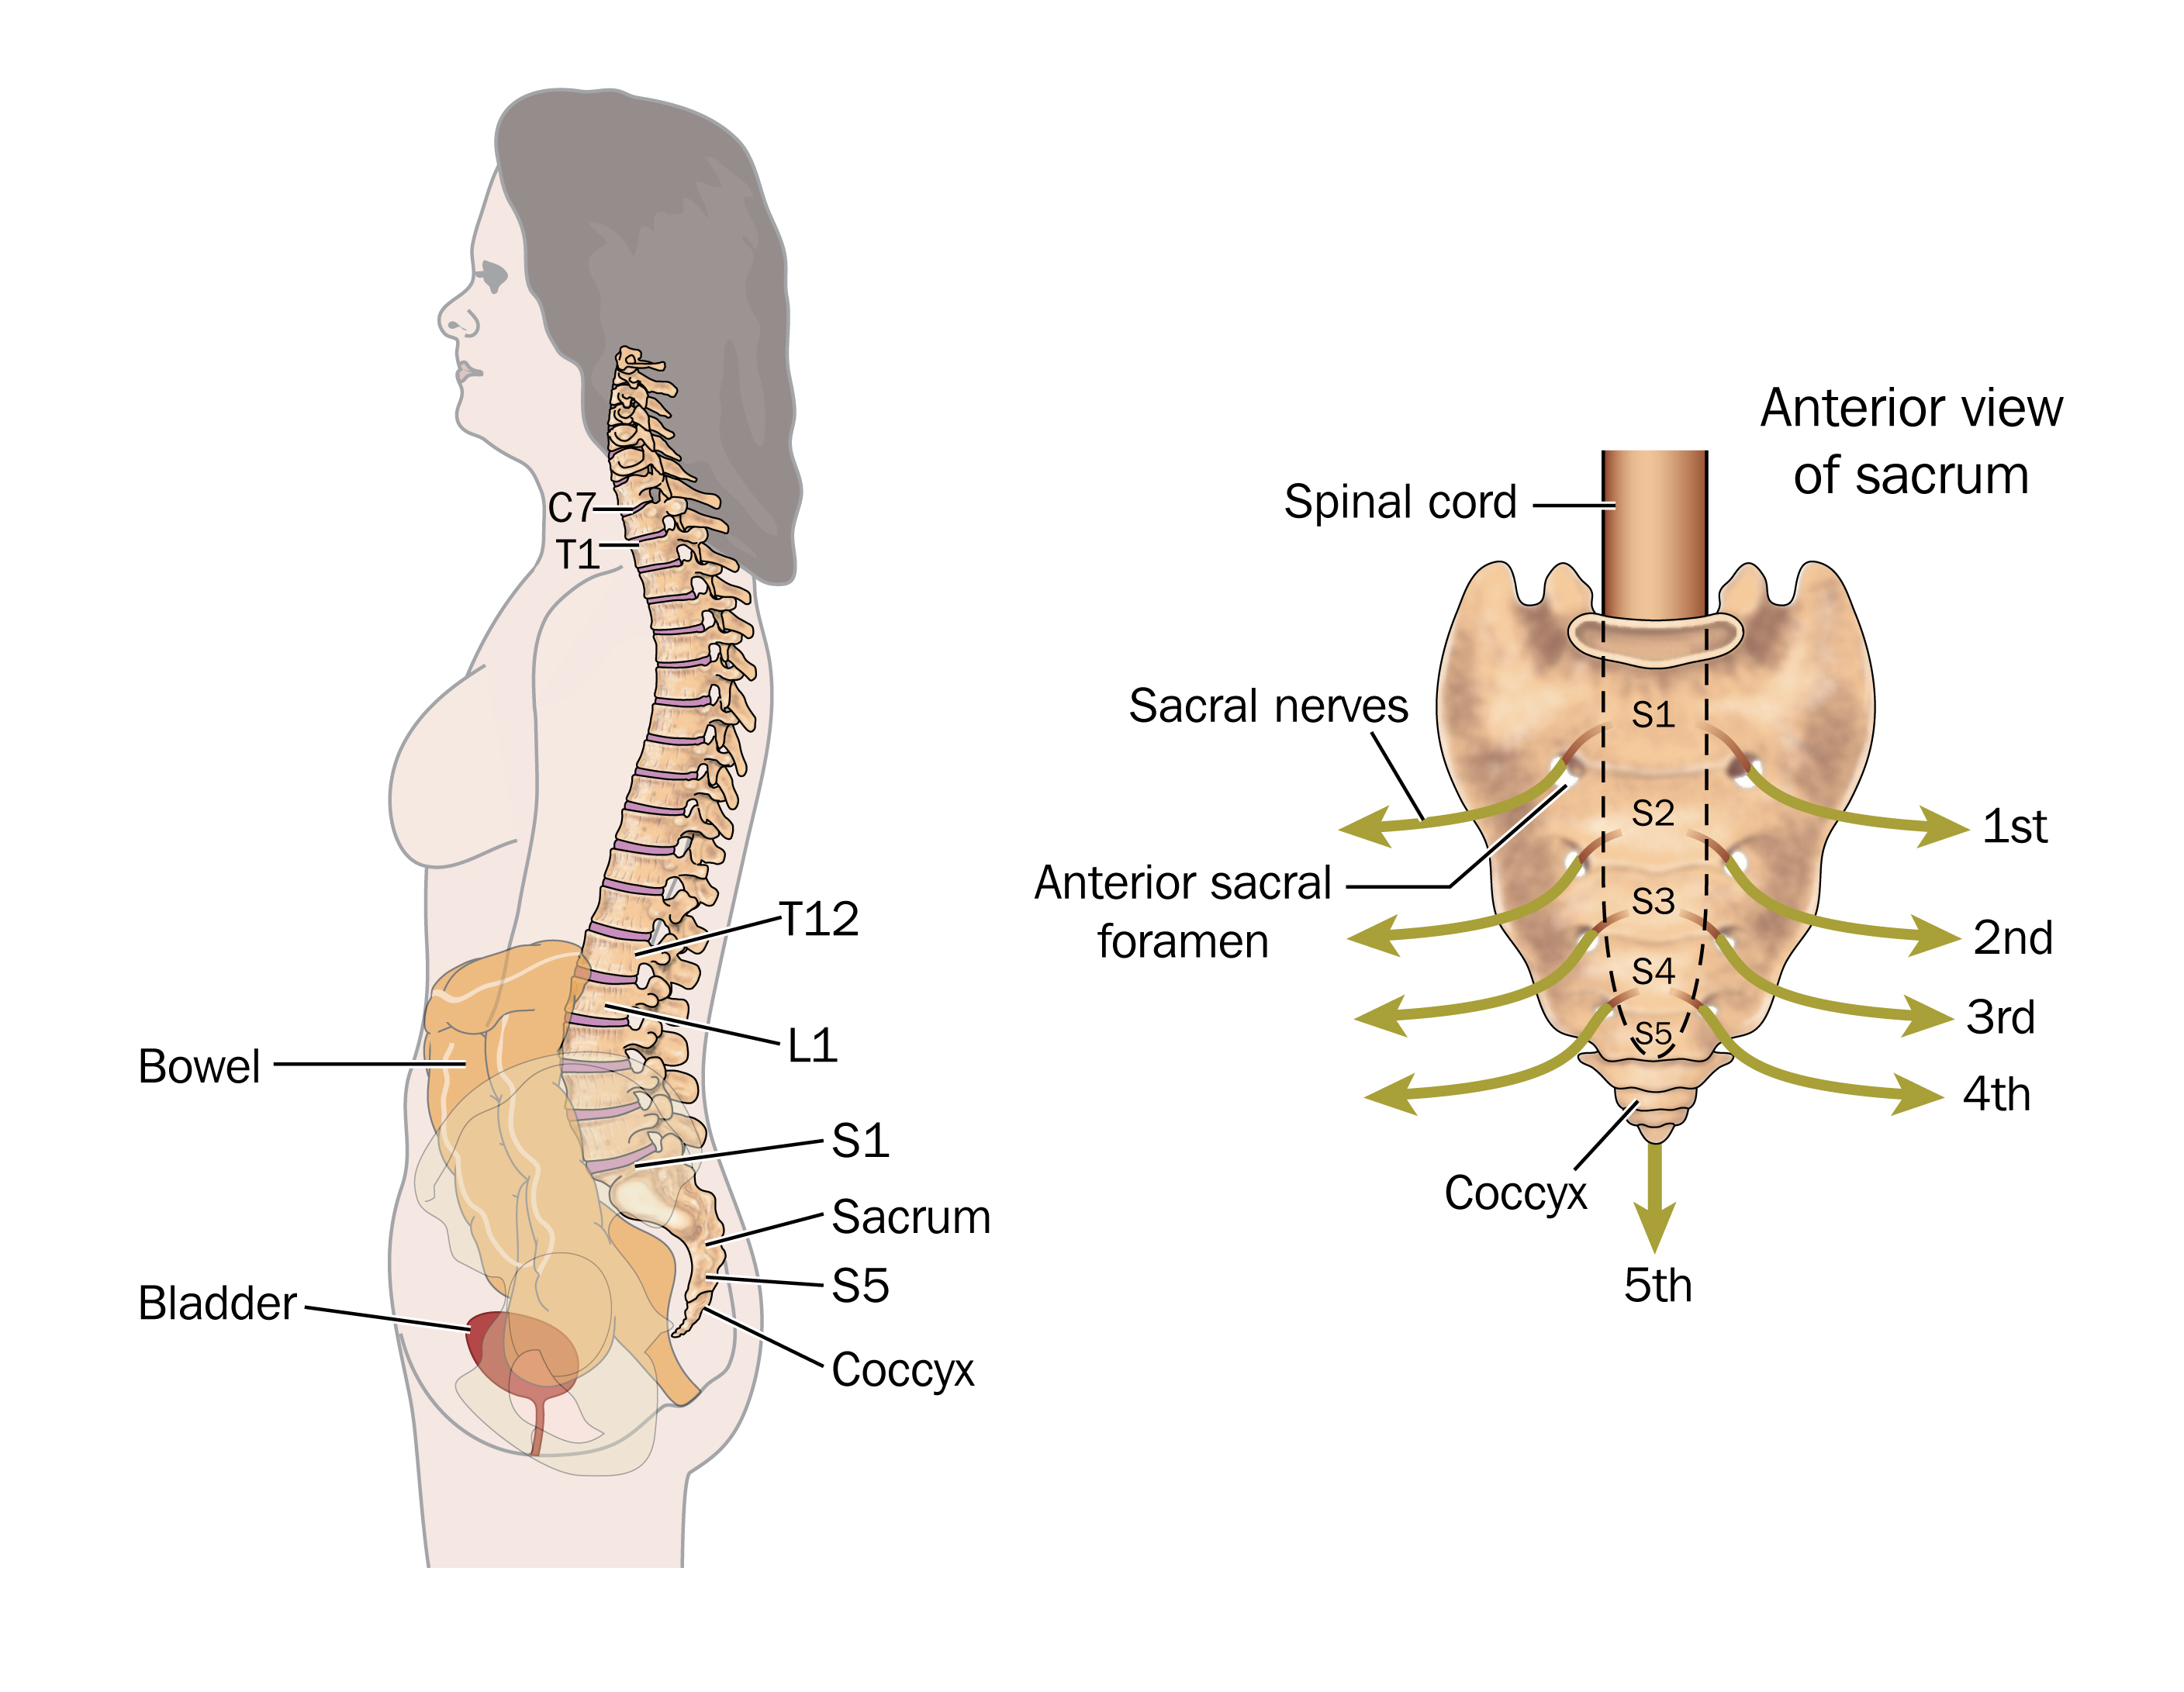 Side View Of The Bowel Spinal Column And Sacral Nerves To Show The Nerves Involved In Bowel